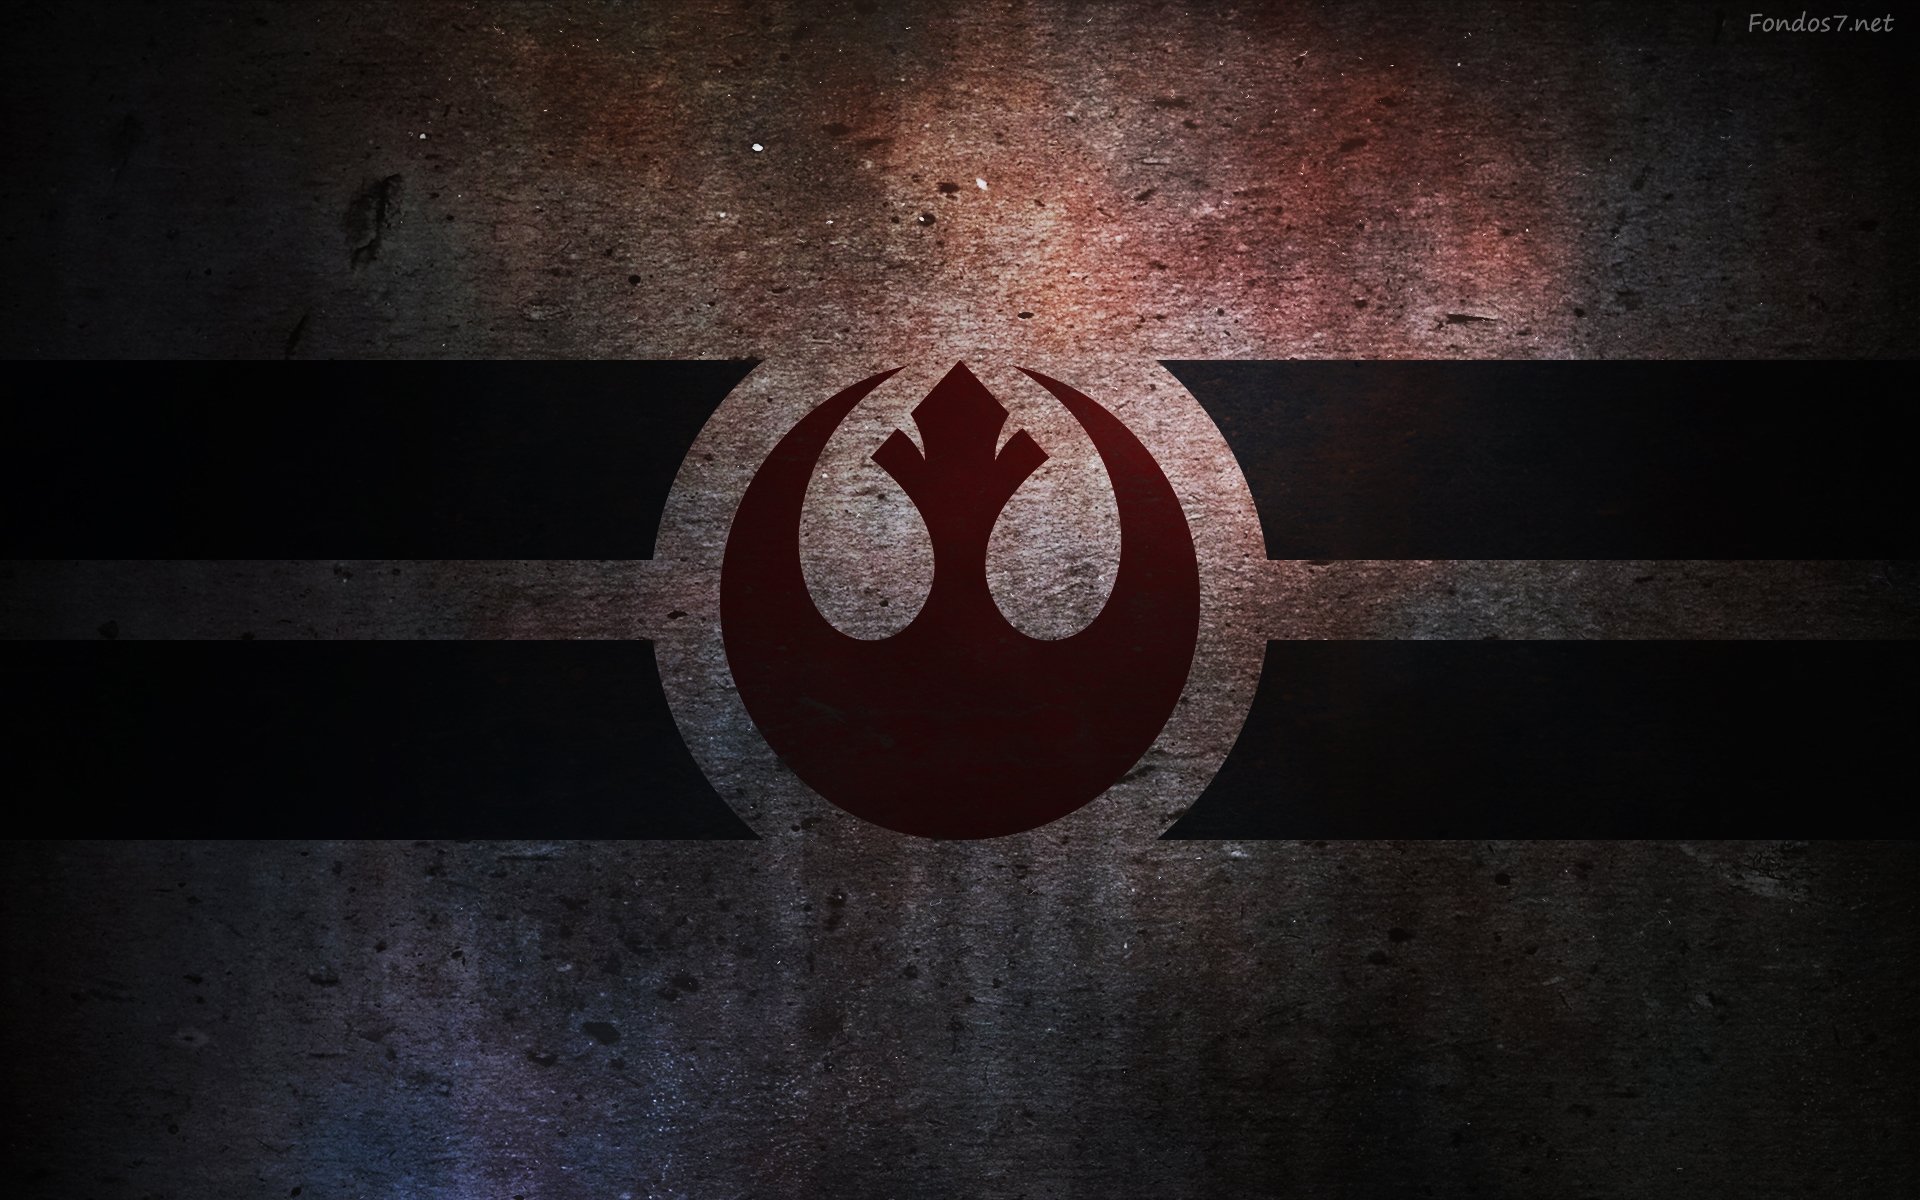 Wallpapers de Star Wars HD - Taringa!